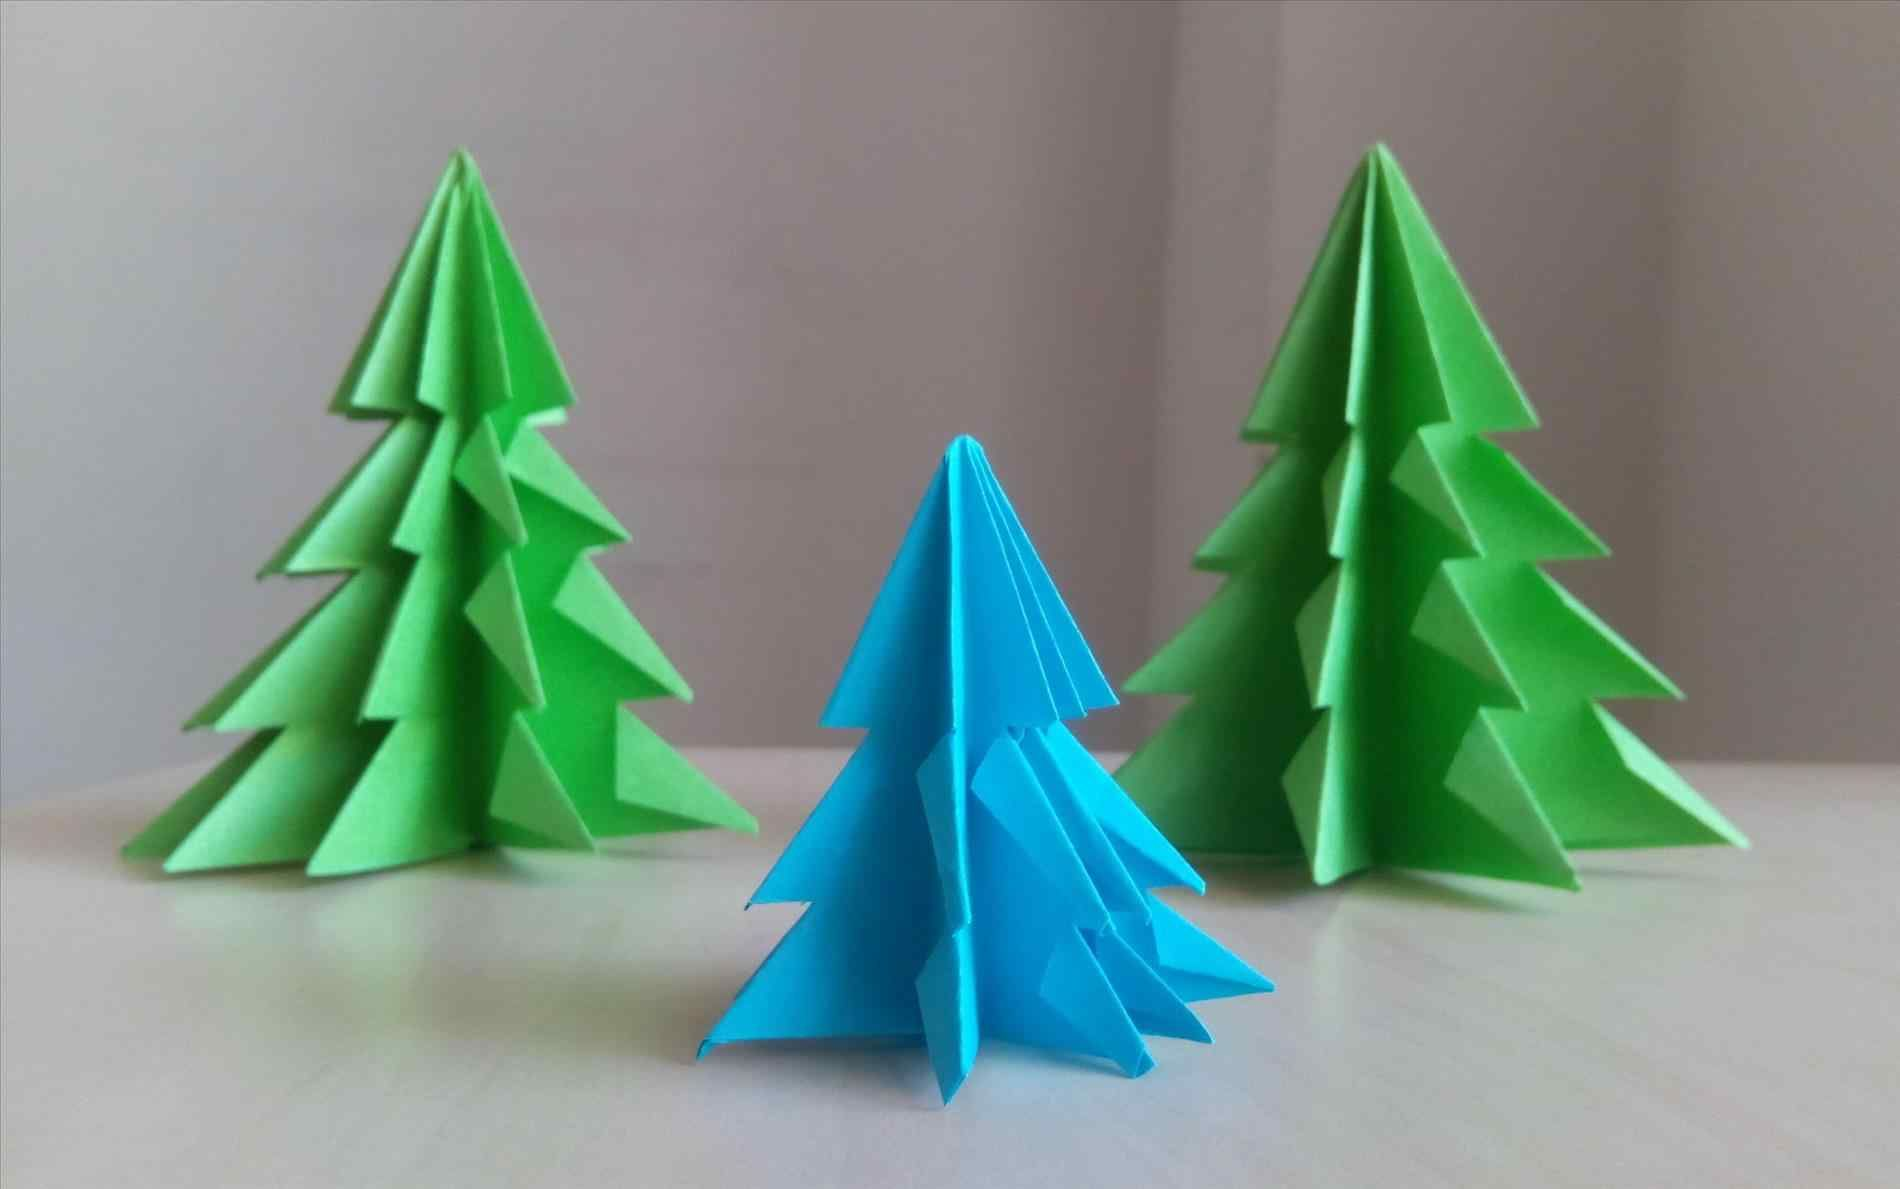 new post christmas decorations to make at home with paper step by step has - Paper Christmas Decorations To Make At Home